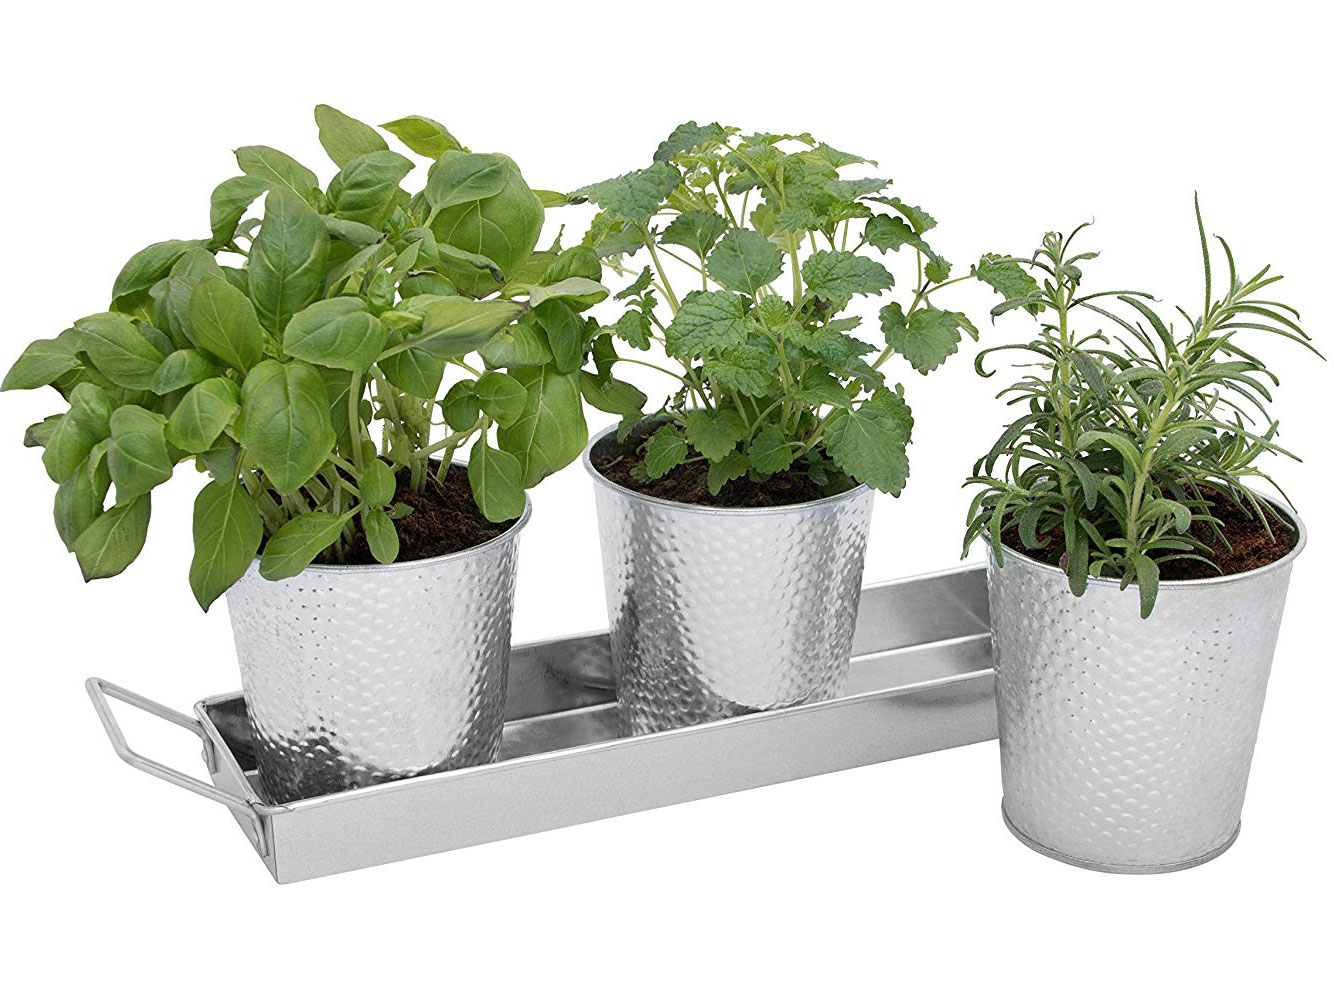 12 Essential Tools for Starting an Indoor Herb Garden